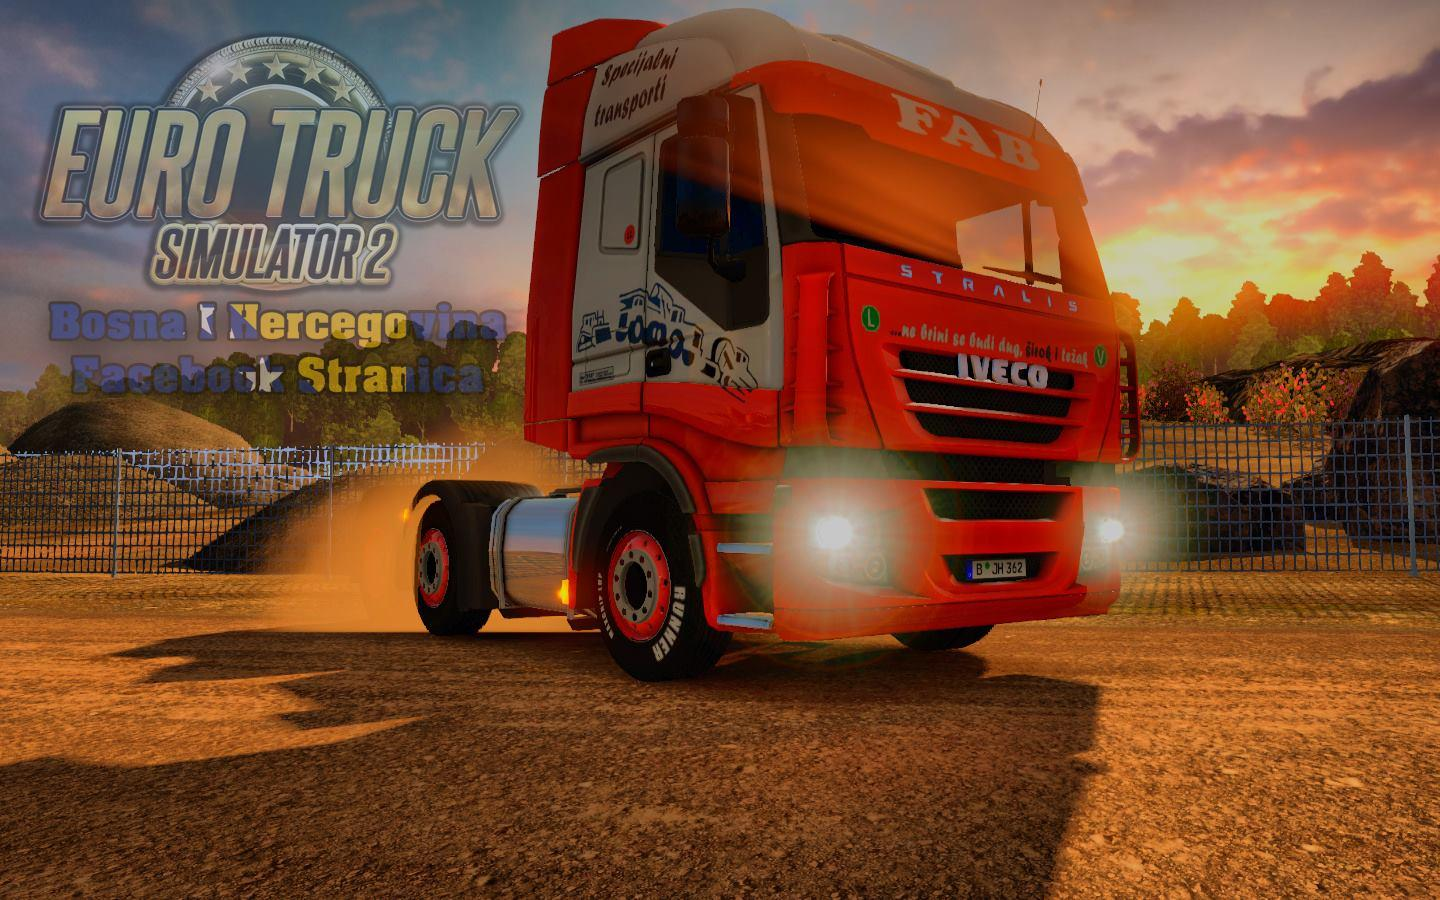 iveco-strails-fab-truck-skin-1-7_1